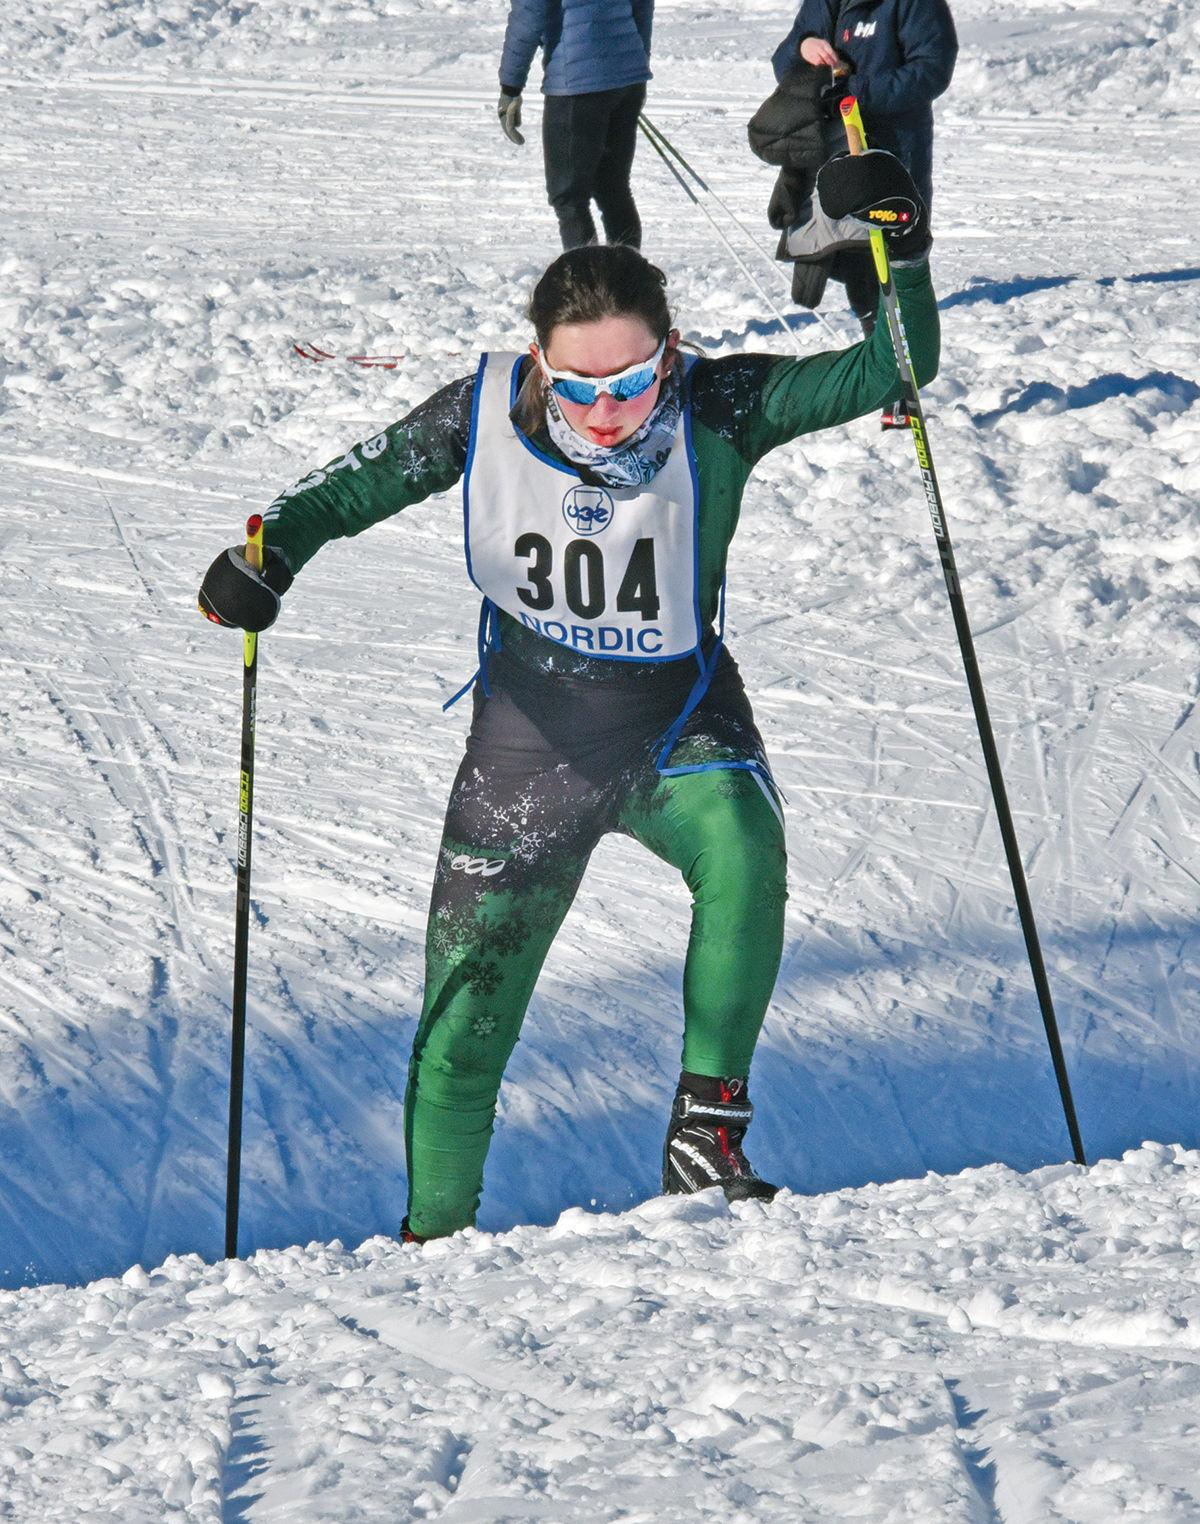 Nordic Stowe High's Andrea Jackman